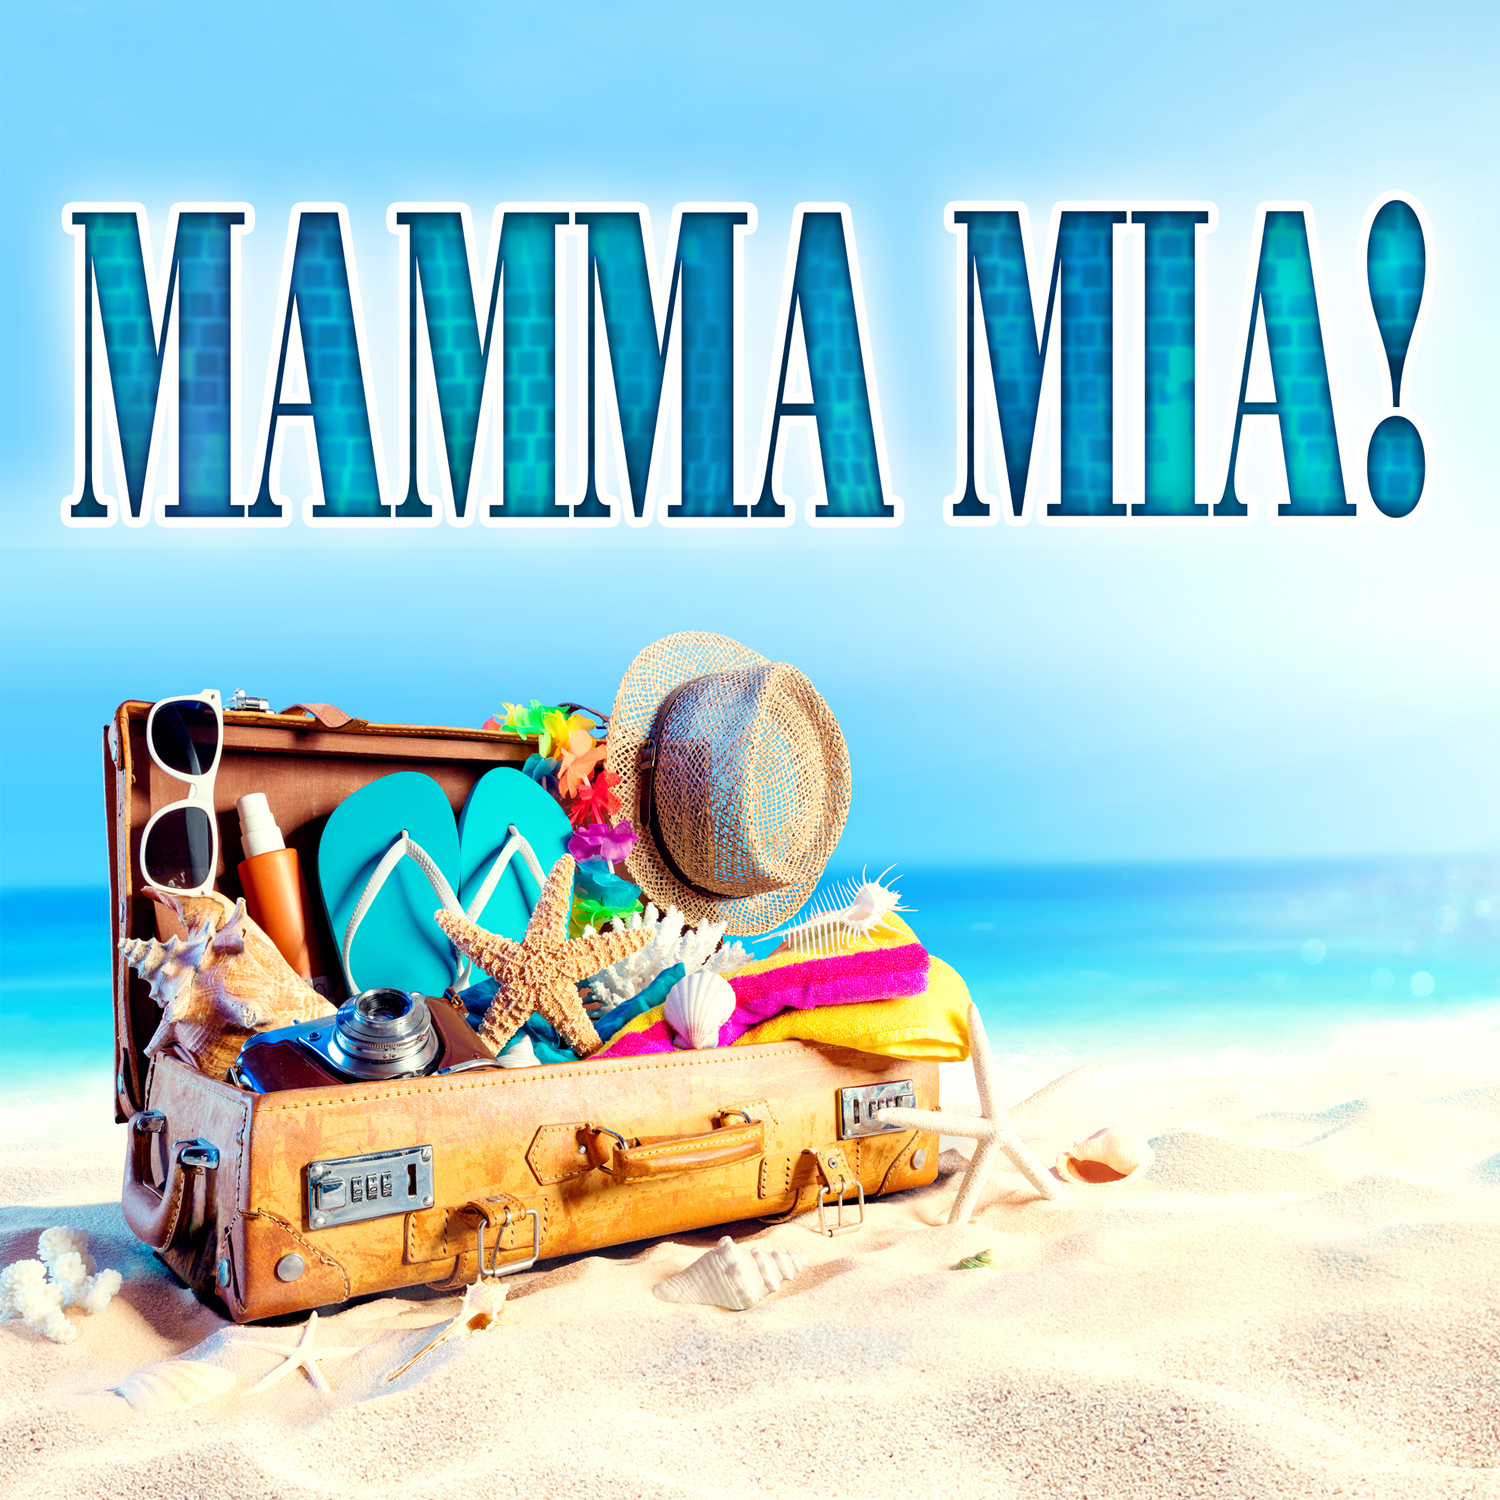 Mamma Mia the Musical Hotel Packages - New Year's Eve Niagara Falls